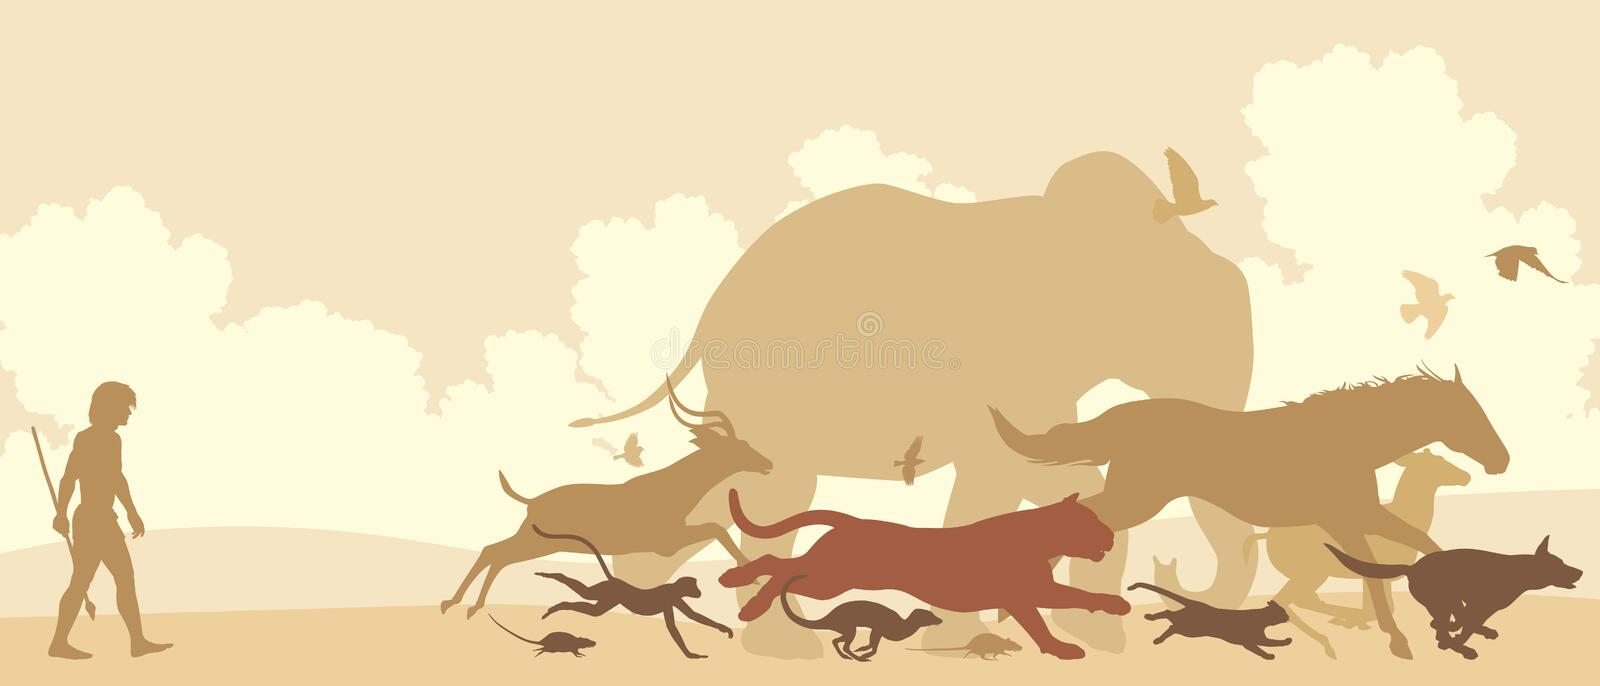 Animals fleeing man. Editable vector silhouettes of diverse animals running away from an early man vector illustration